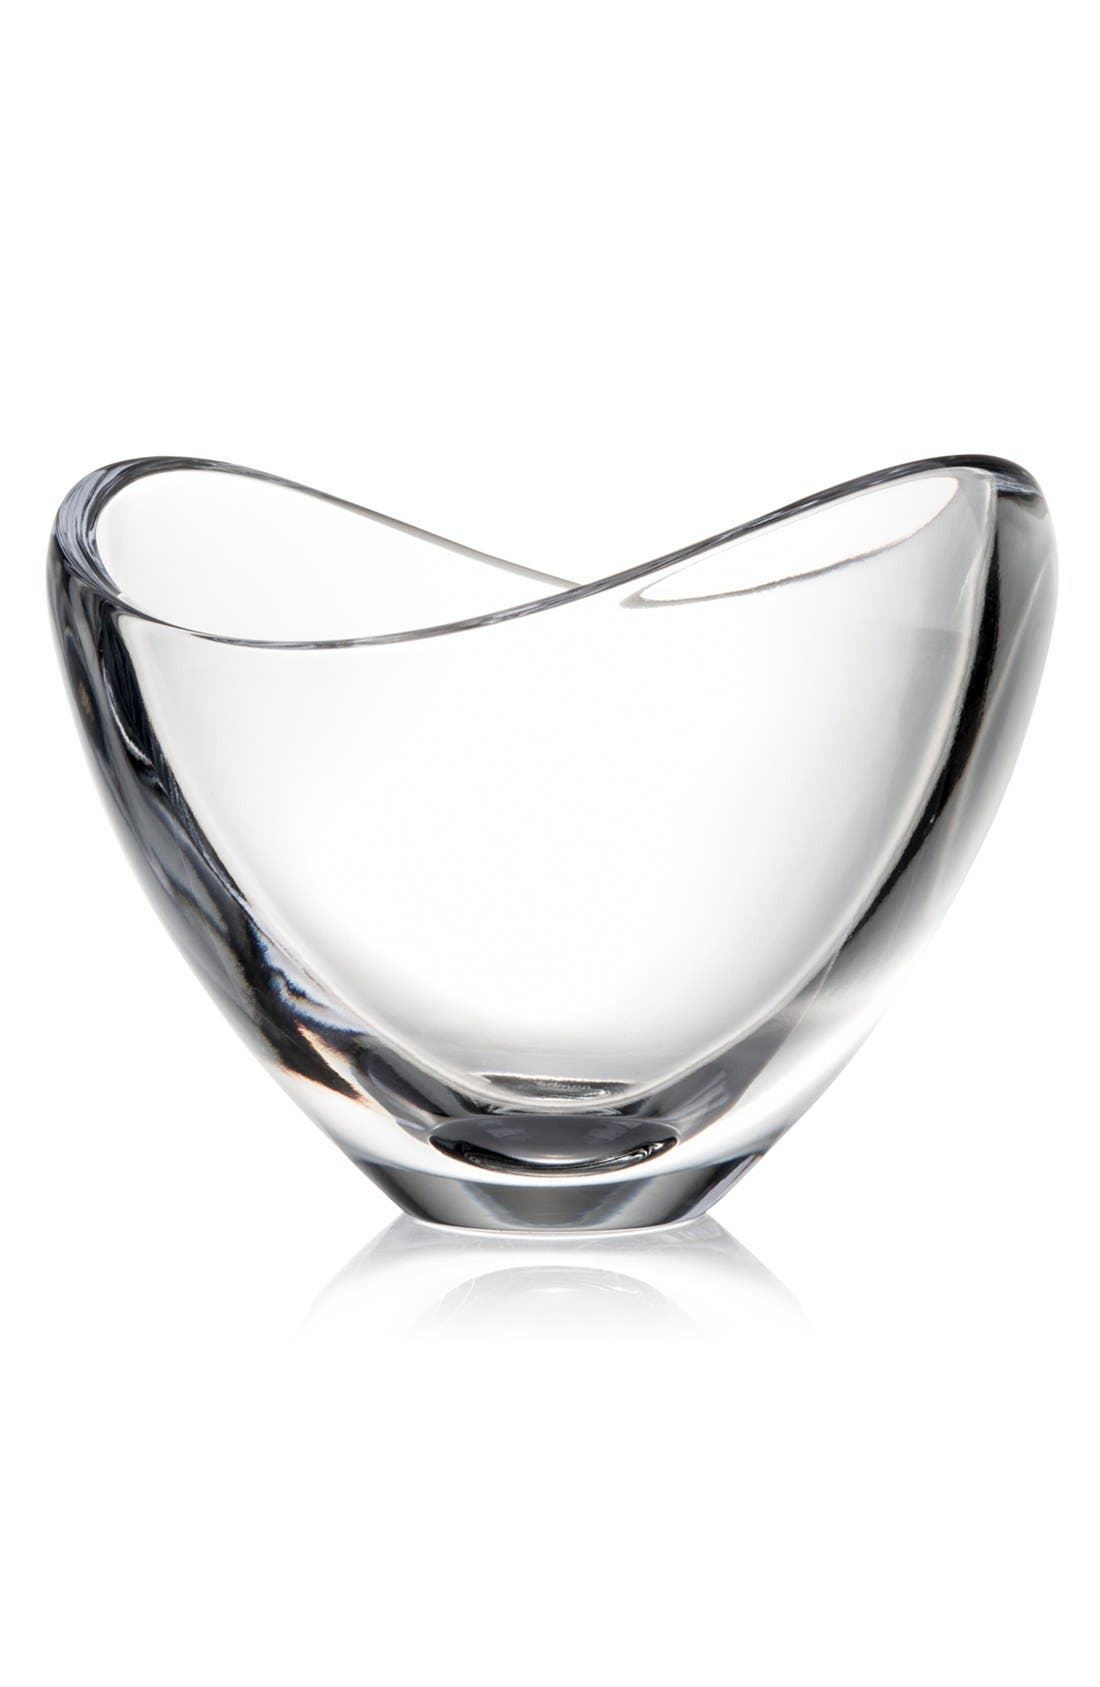 Main Image - Nambé 'Butterfly' Full-Lead Crystal Bowl, Small